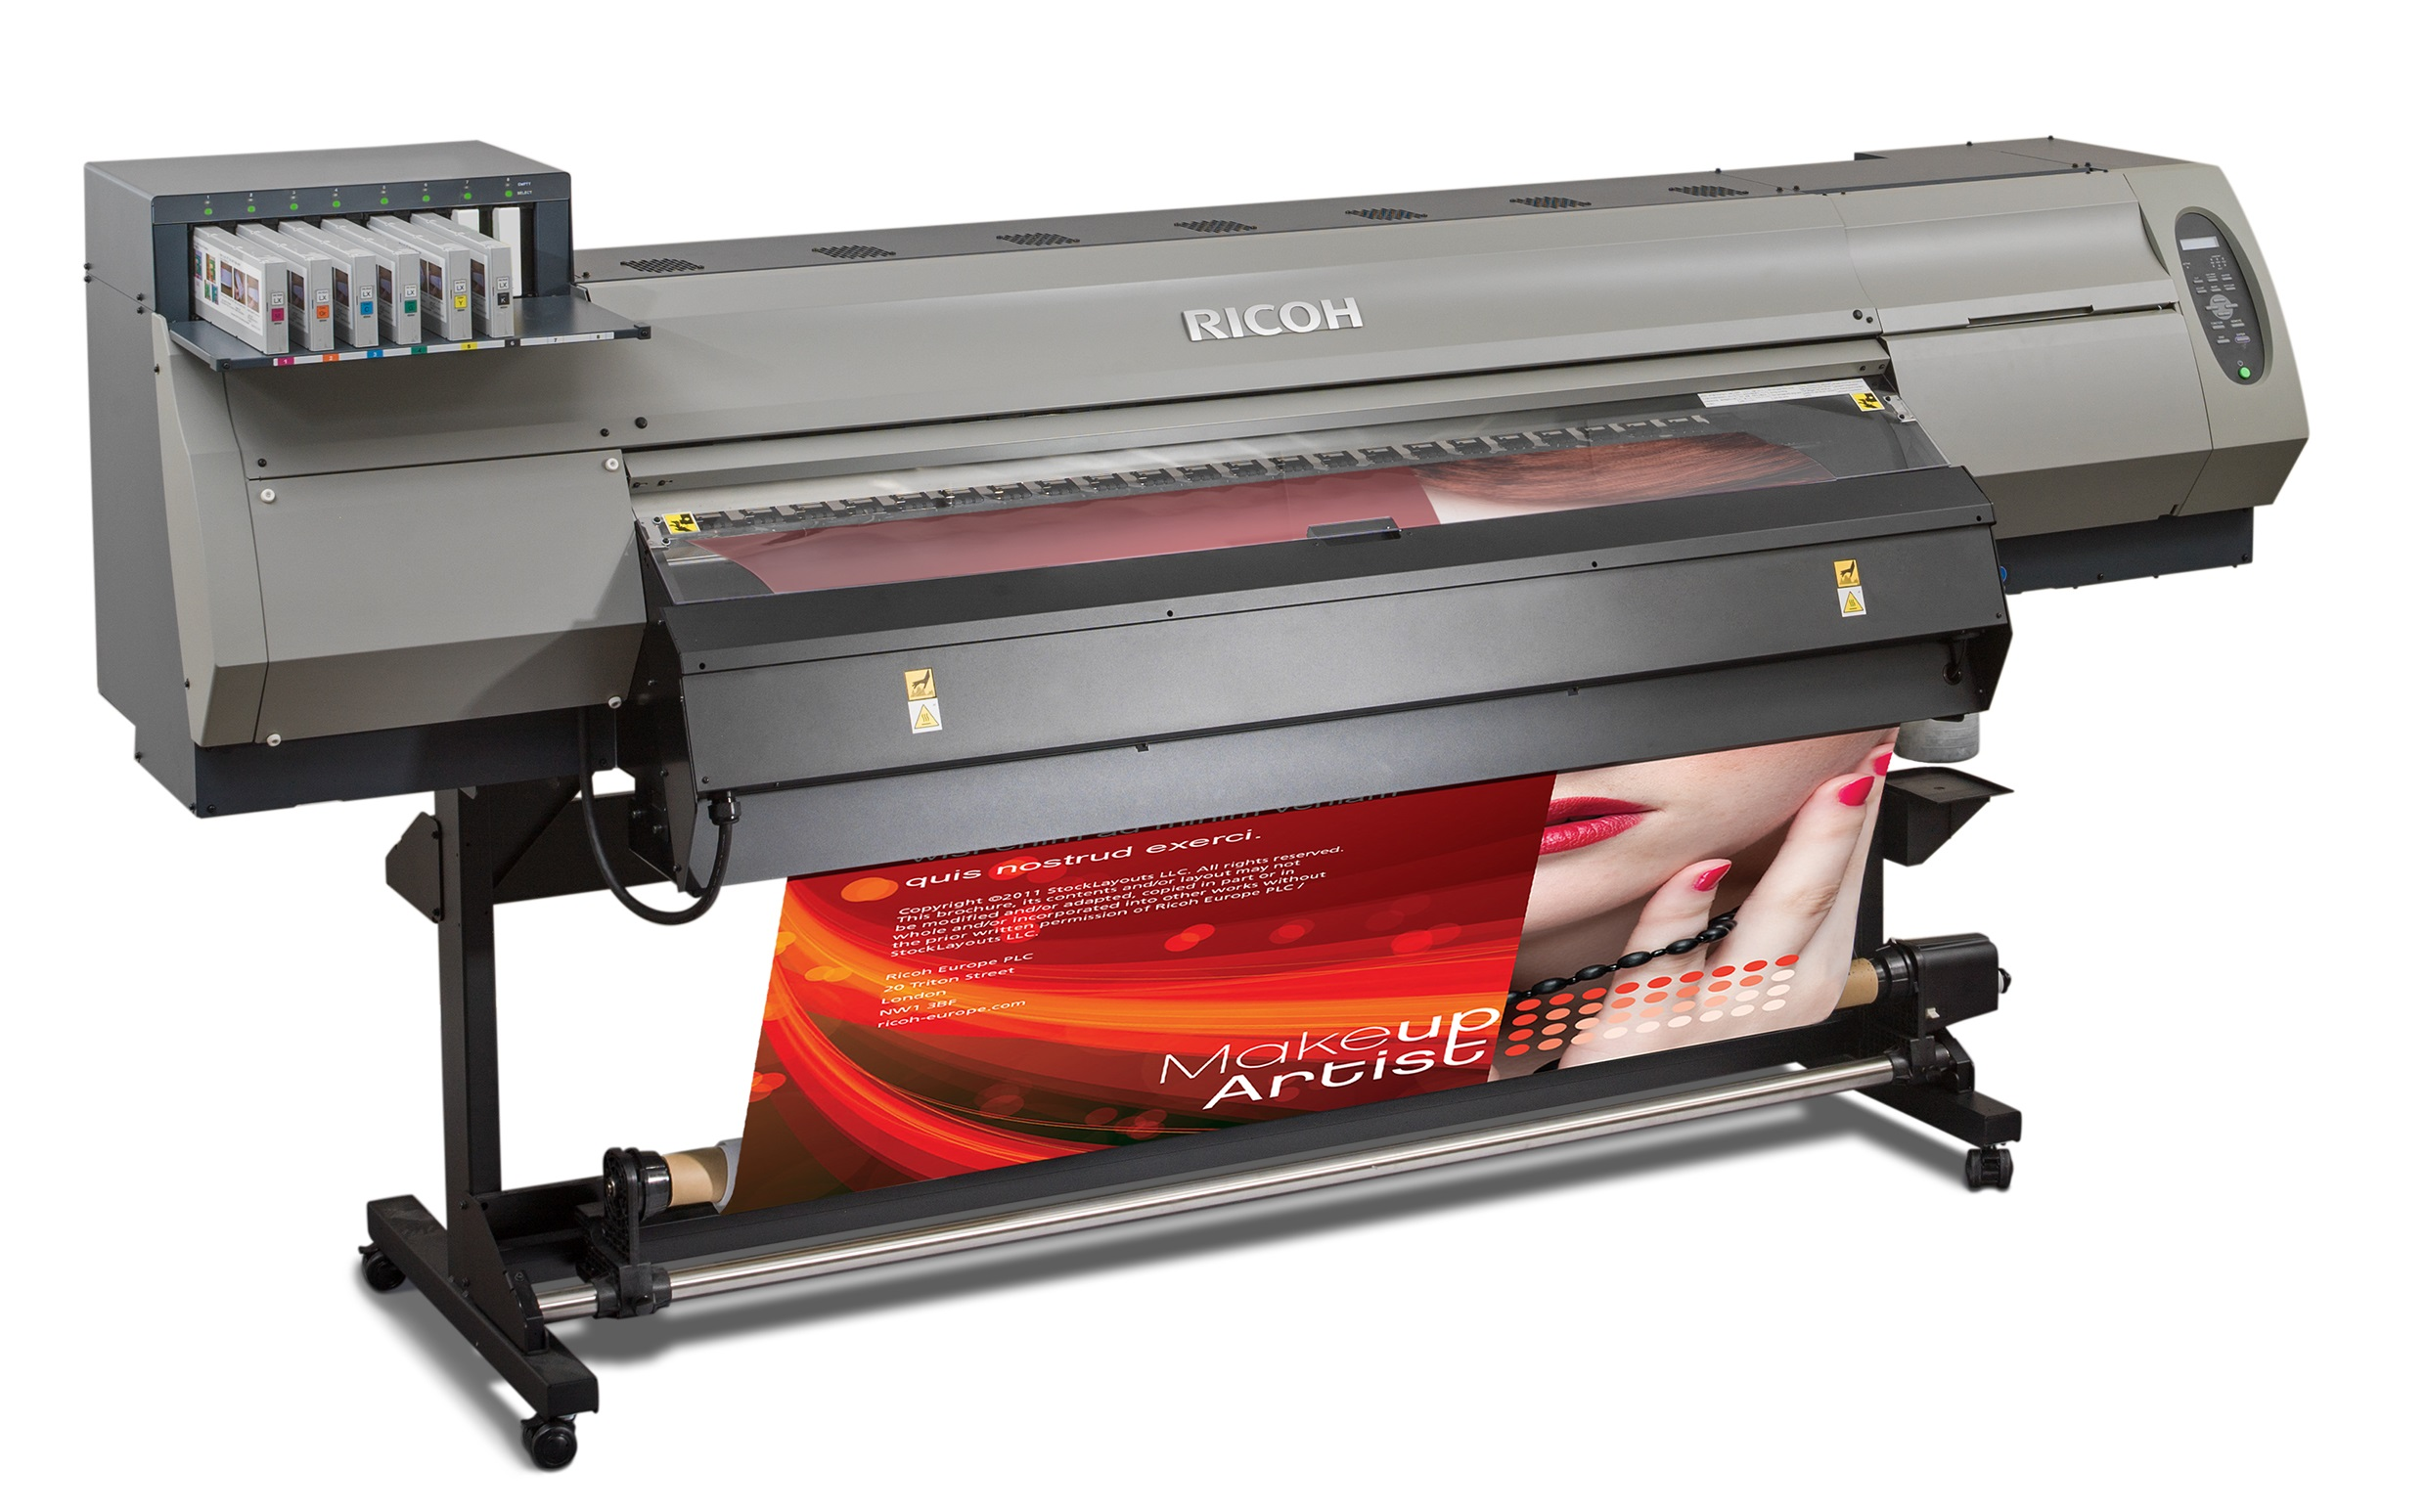 Ricoh supports new market moves for print service providers at FESPA 2017